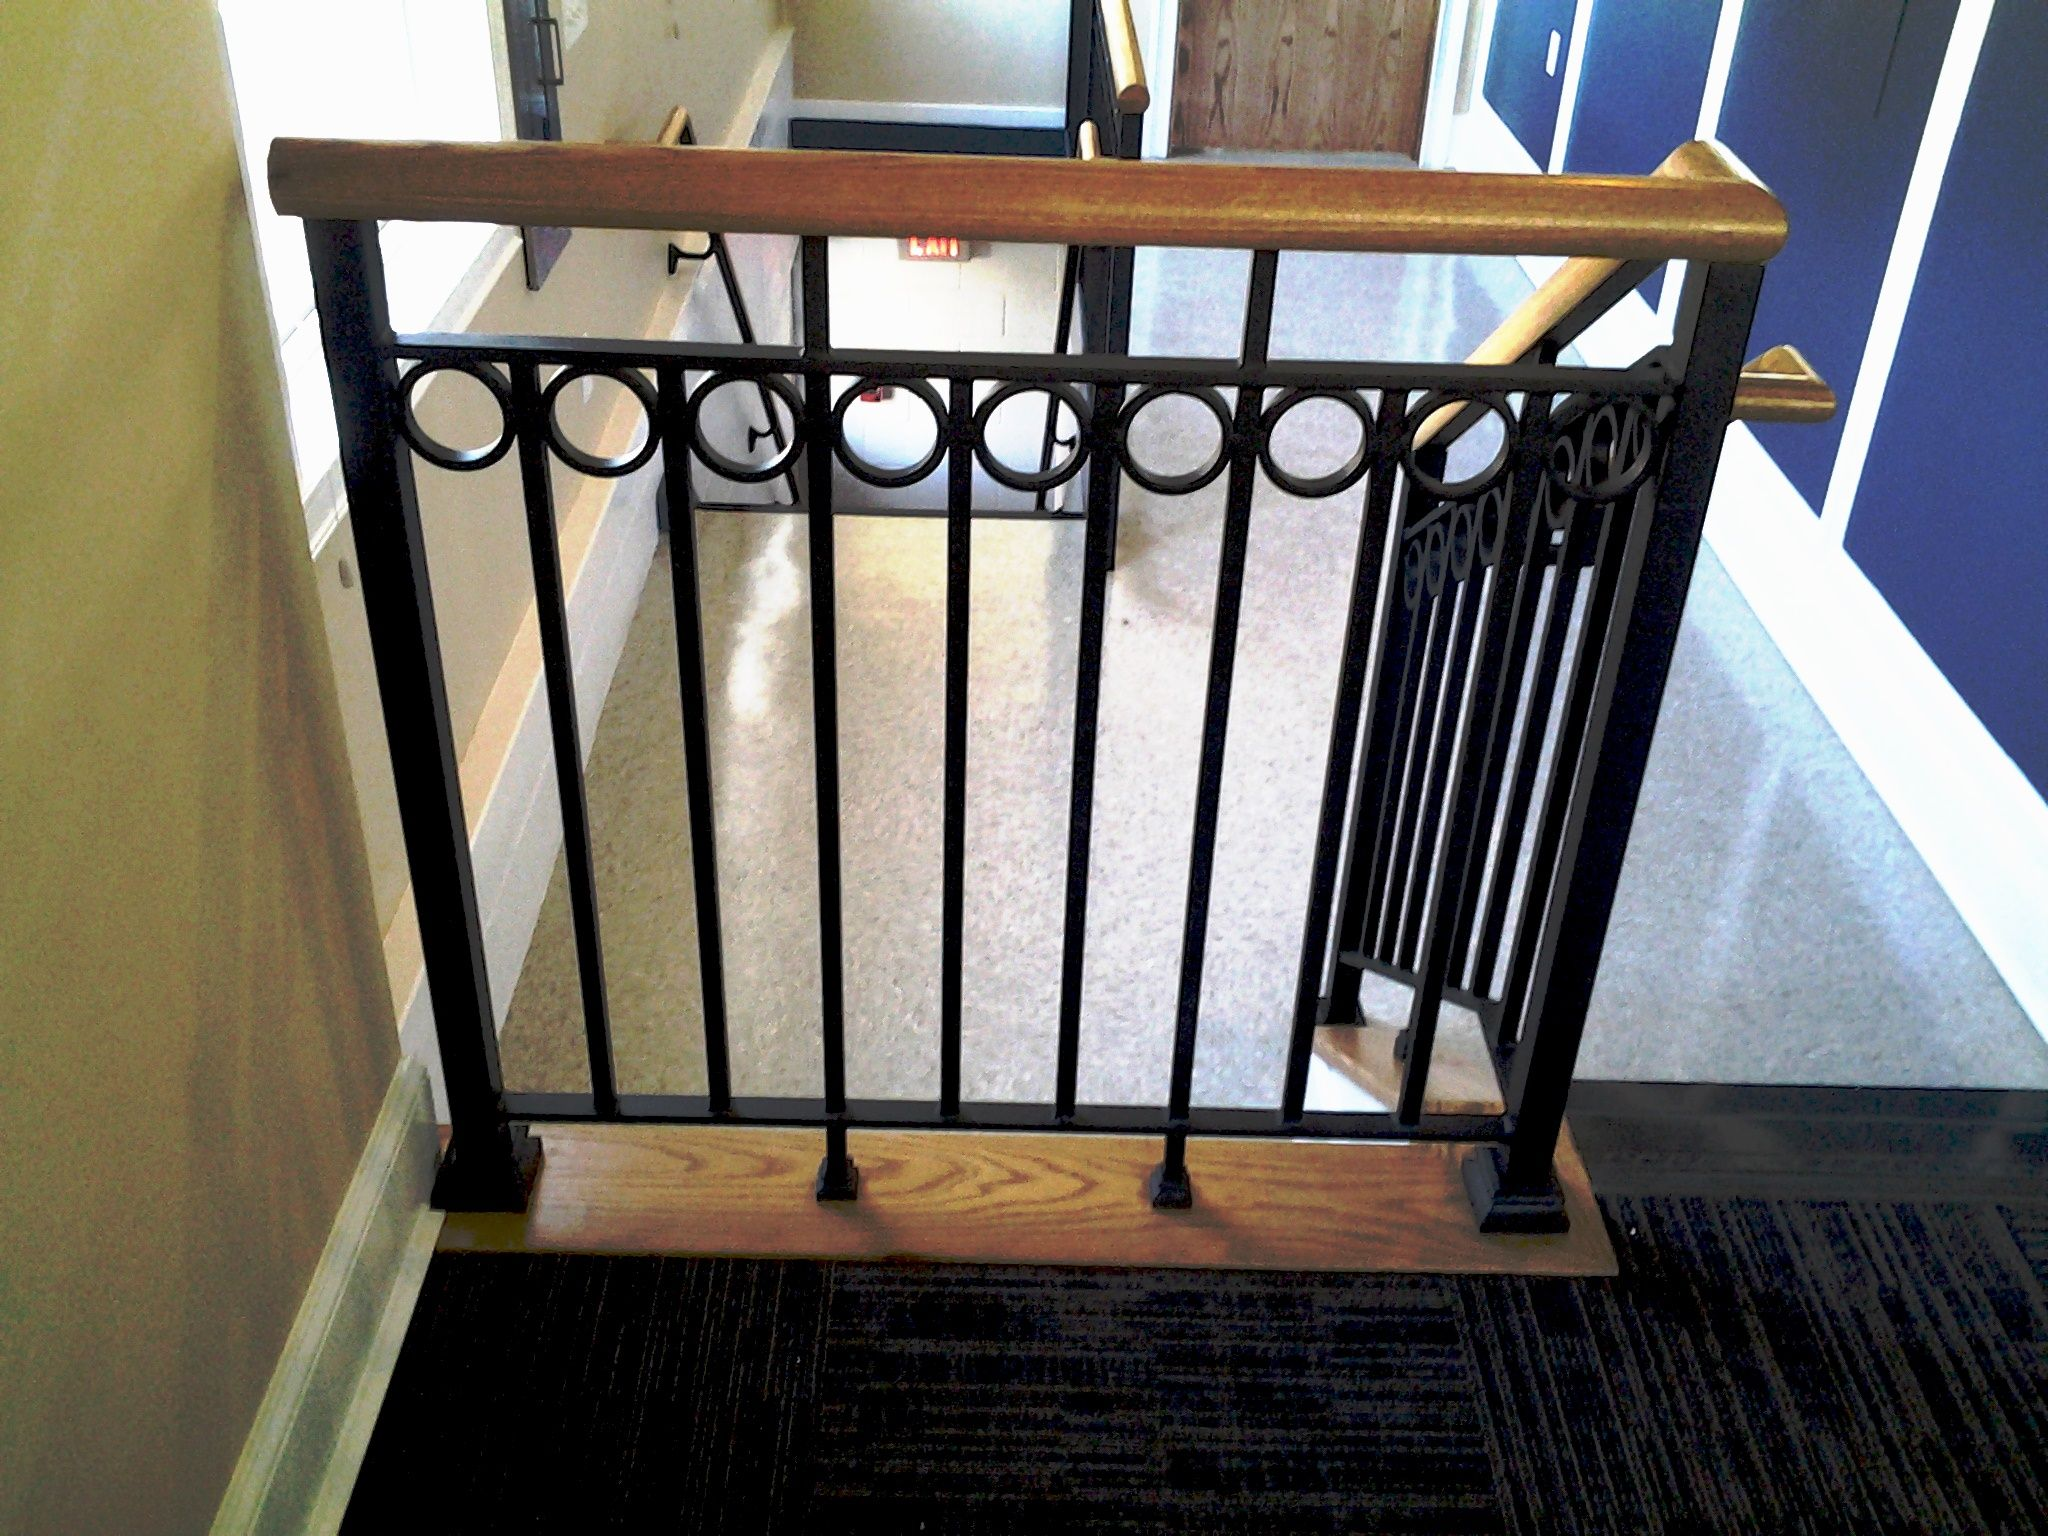 Wrought Iron Railing With Decorative Wood Cap Rail Wrought Iron